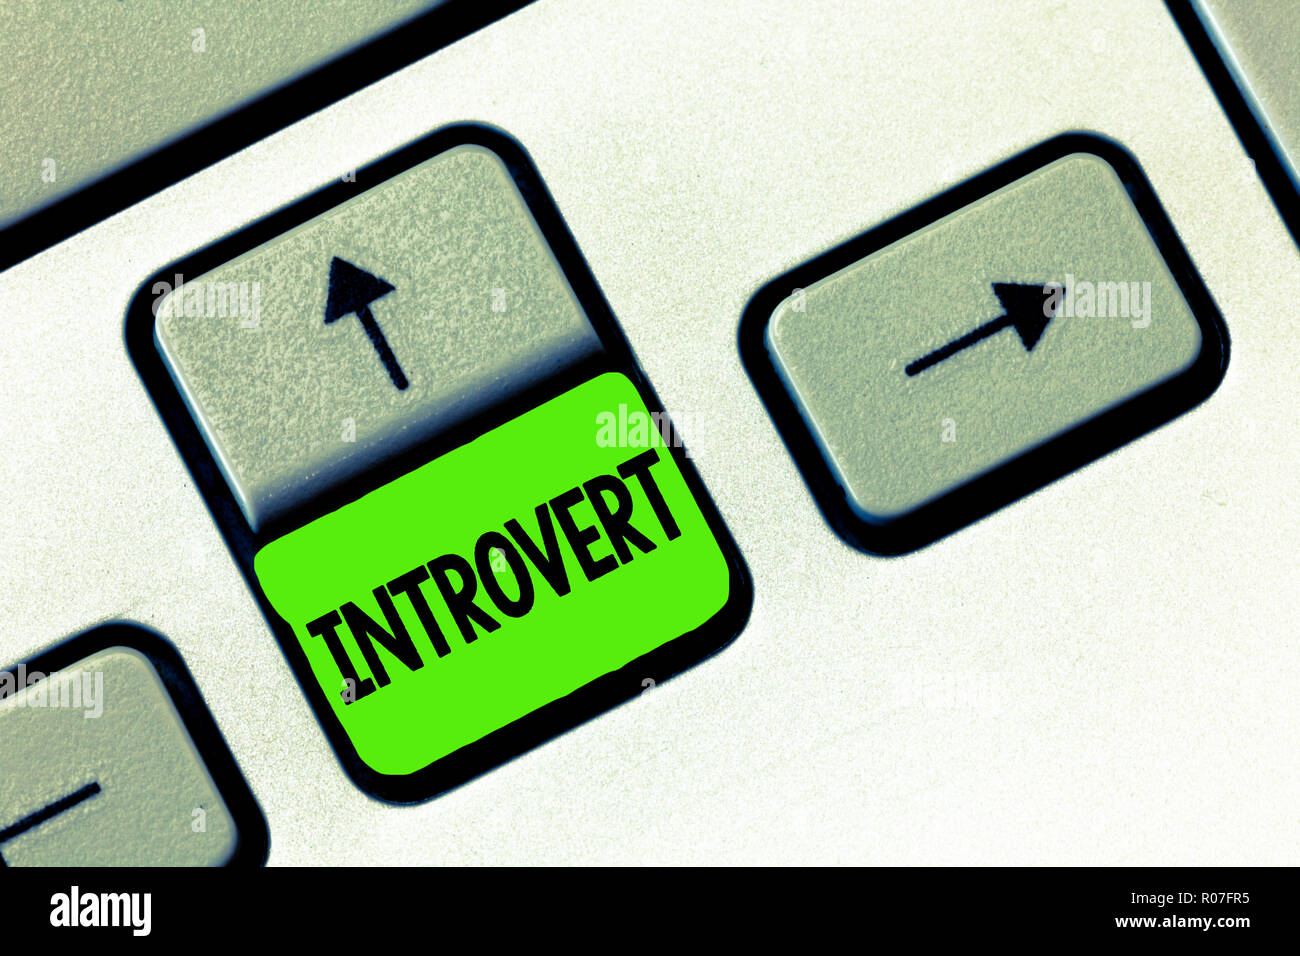 Word writing text Introvert. Business concept for tend to be inward turning or focused more internal thoughts. - Stock Image